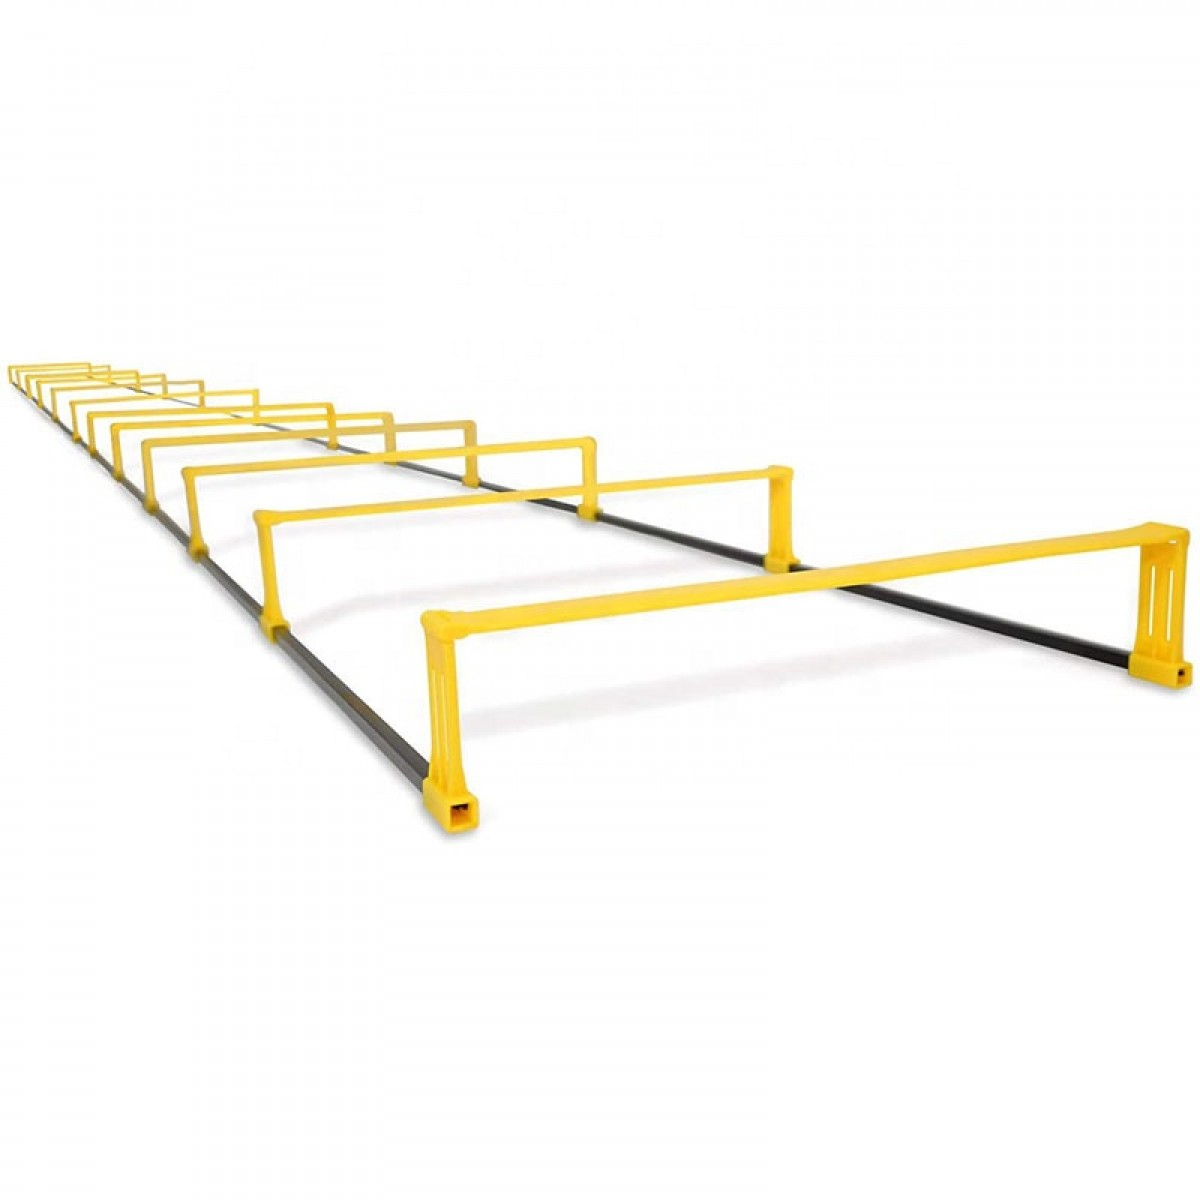 2in1 Agility Speed Ladder